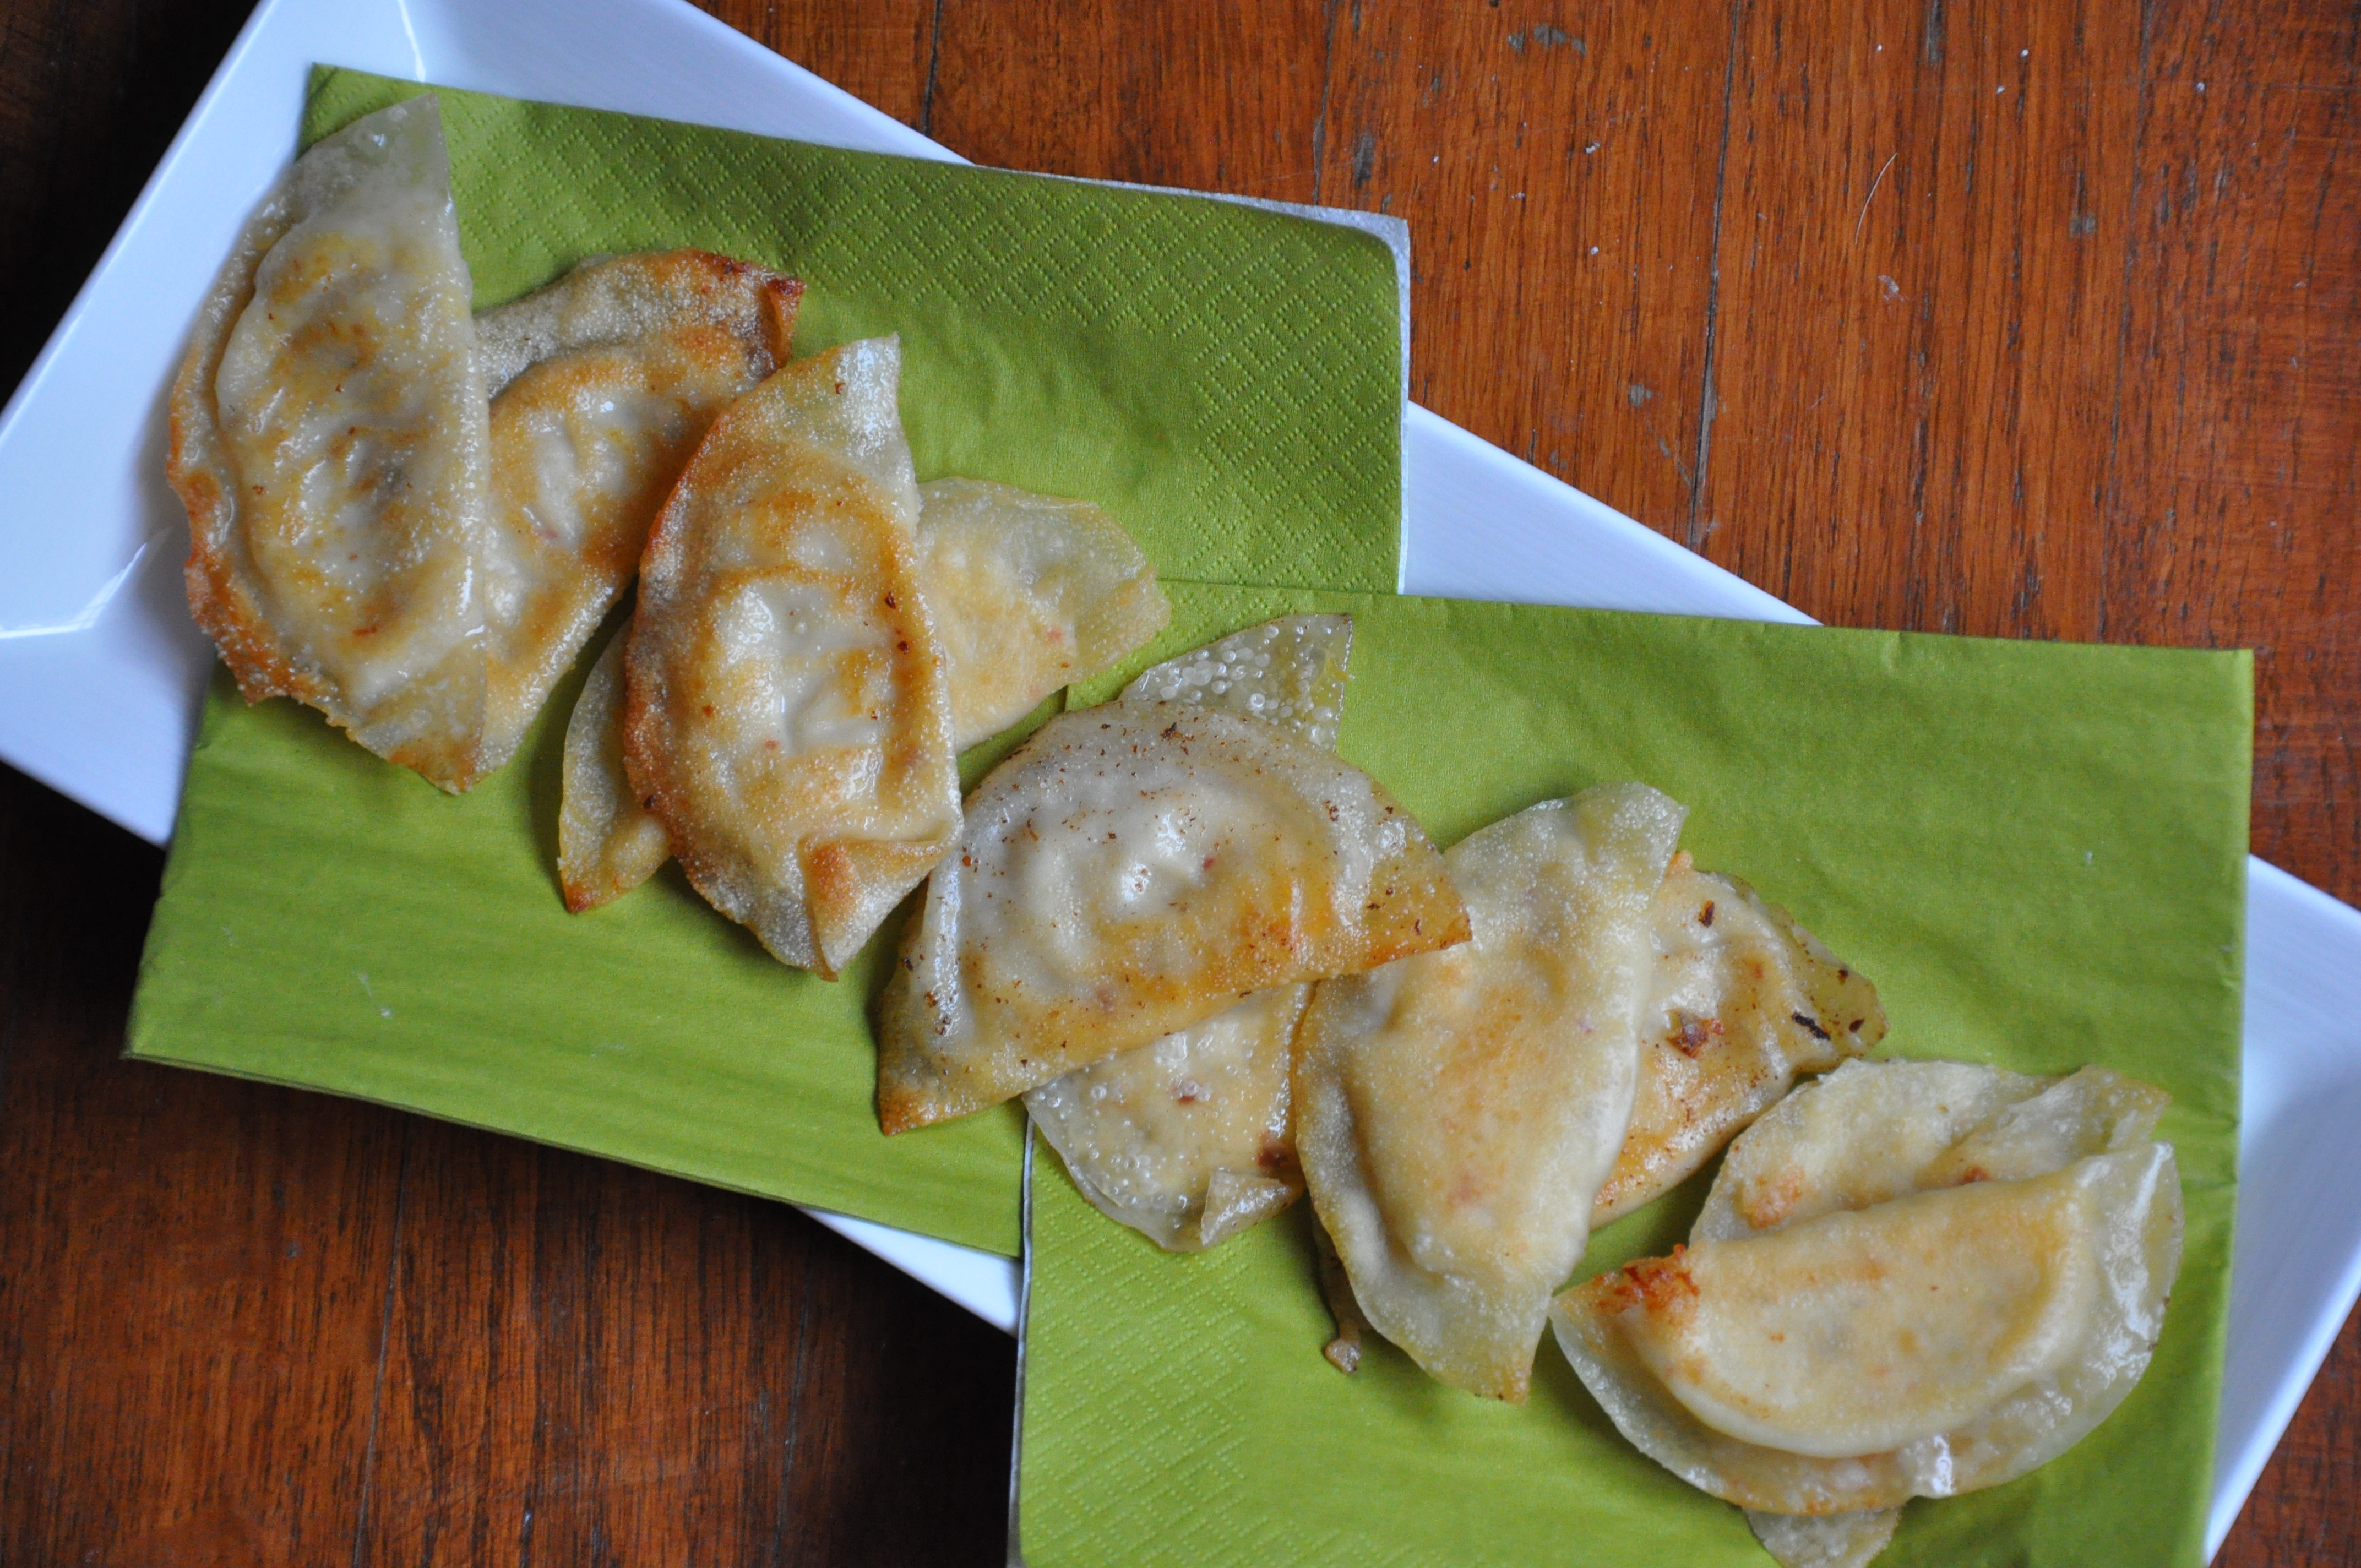 Spicy Cheese & Artichoke Pot Stickers